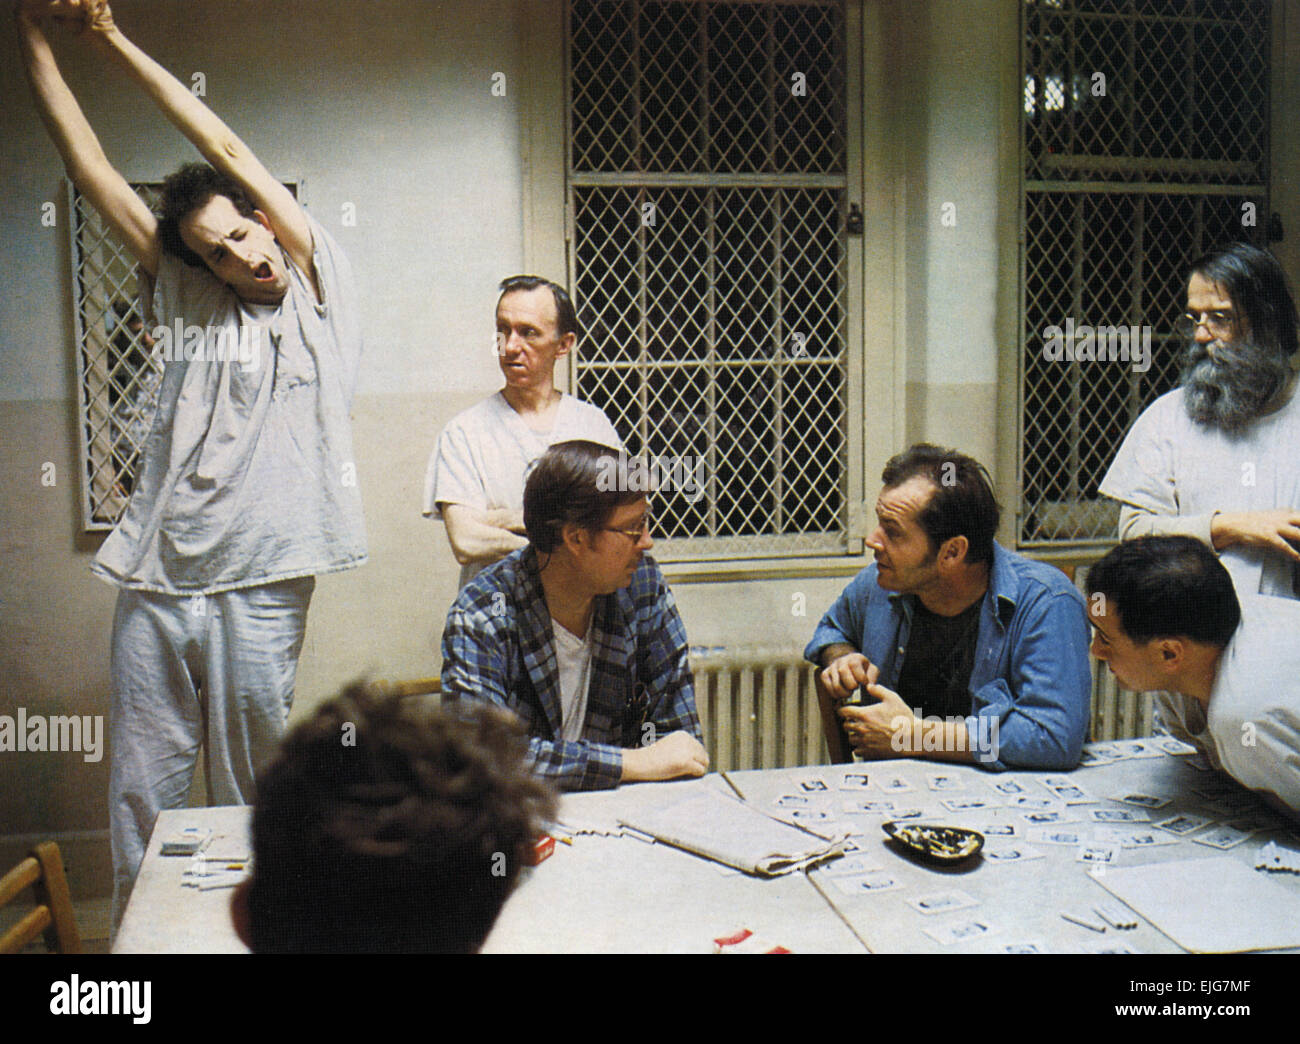 ONE FLEW OVER THE CUCKOO'S NEST 1975 Fantasy Films production with Jack Nicholson third from right - Stock Image